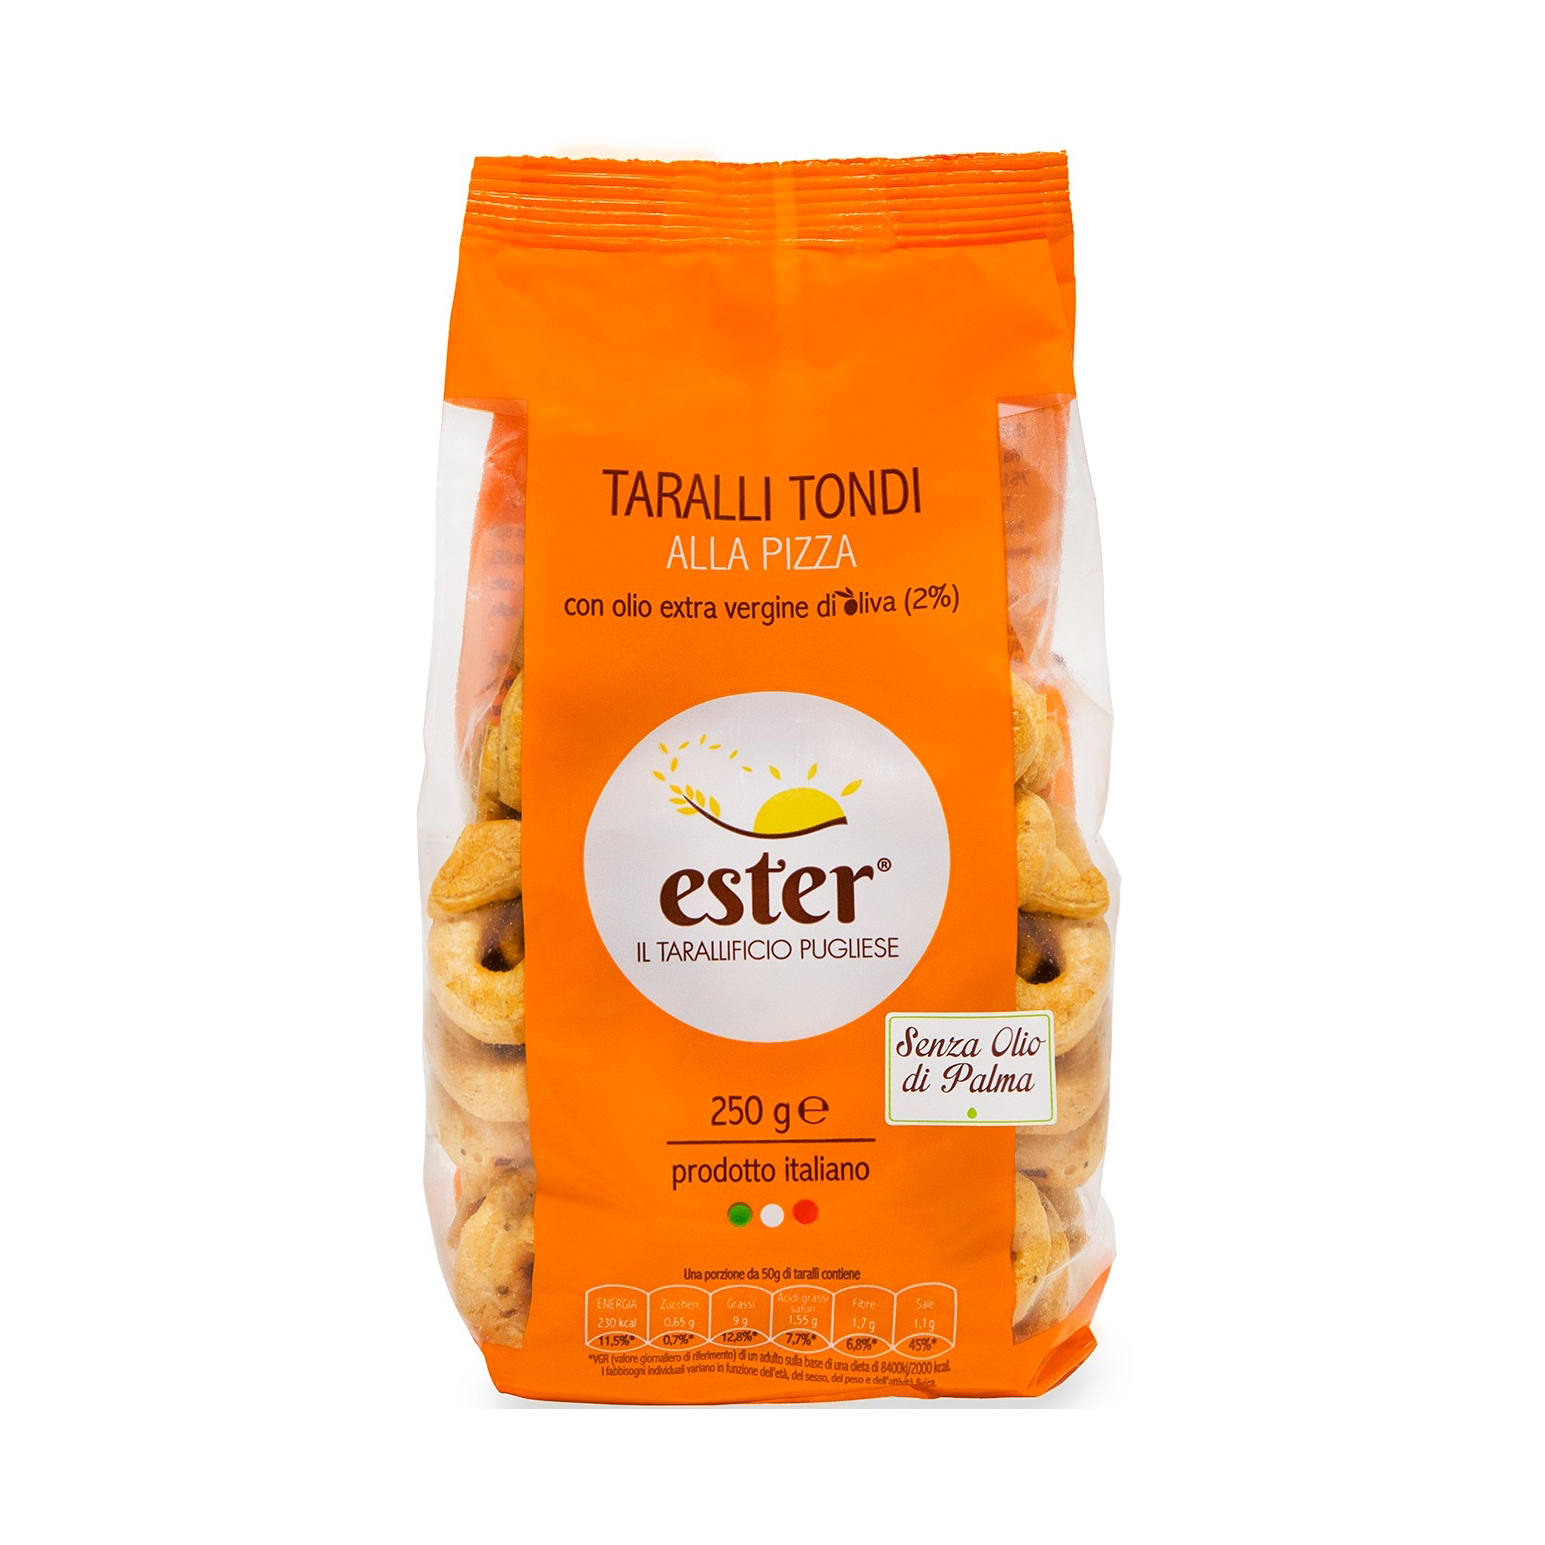 Ester Pizza Taralli Tondi Baked Product Italy wheat,salted snack,biscuit